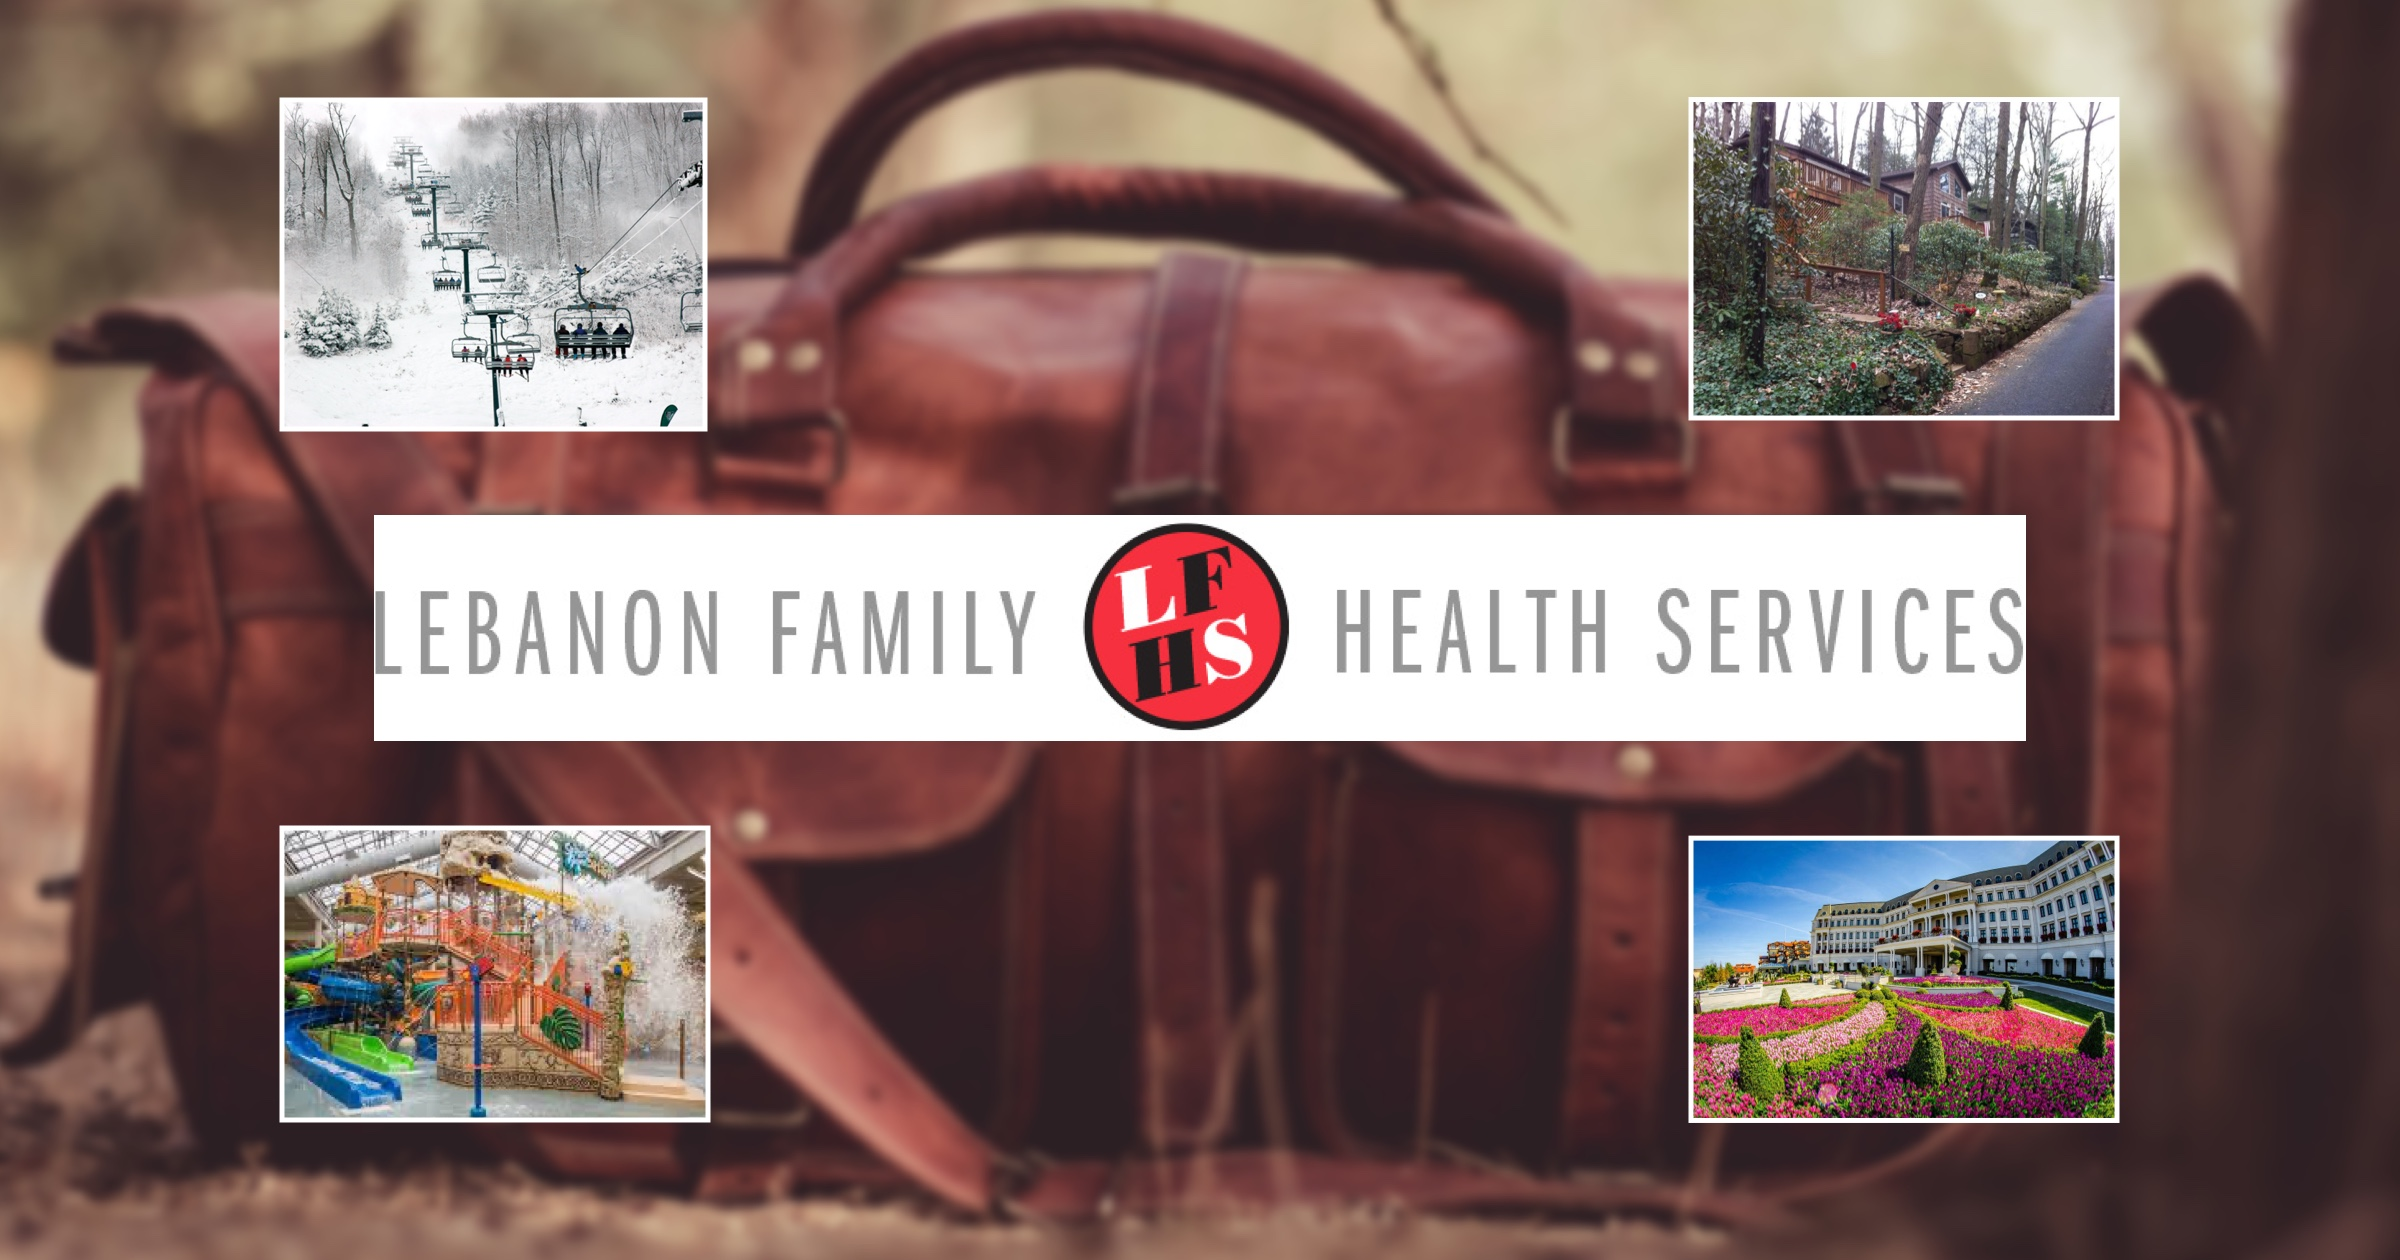 Pack your bags! Lebanon Family Health's 30th annual Travel & Leisure auction is here – and virtual for the first time